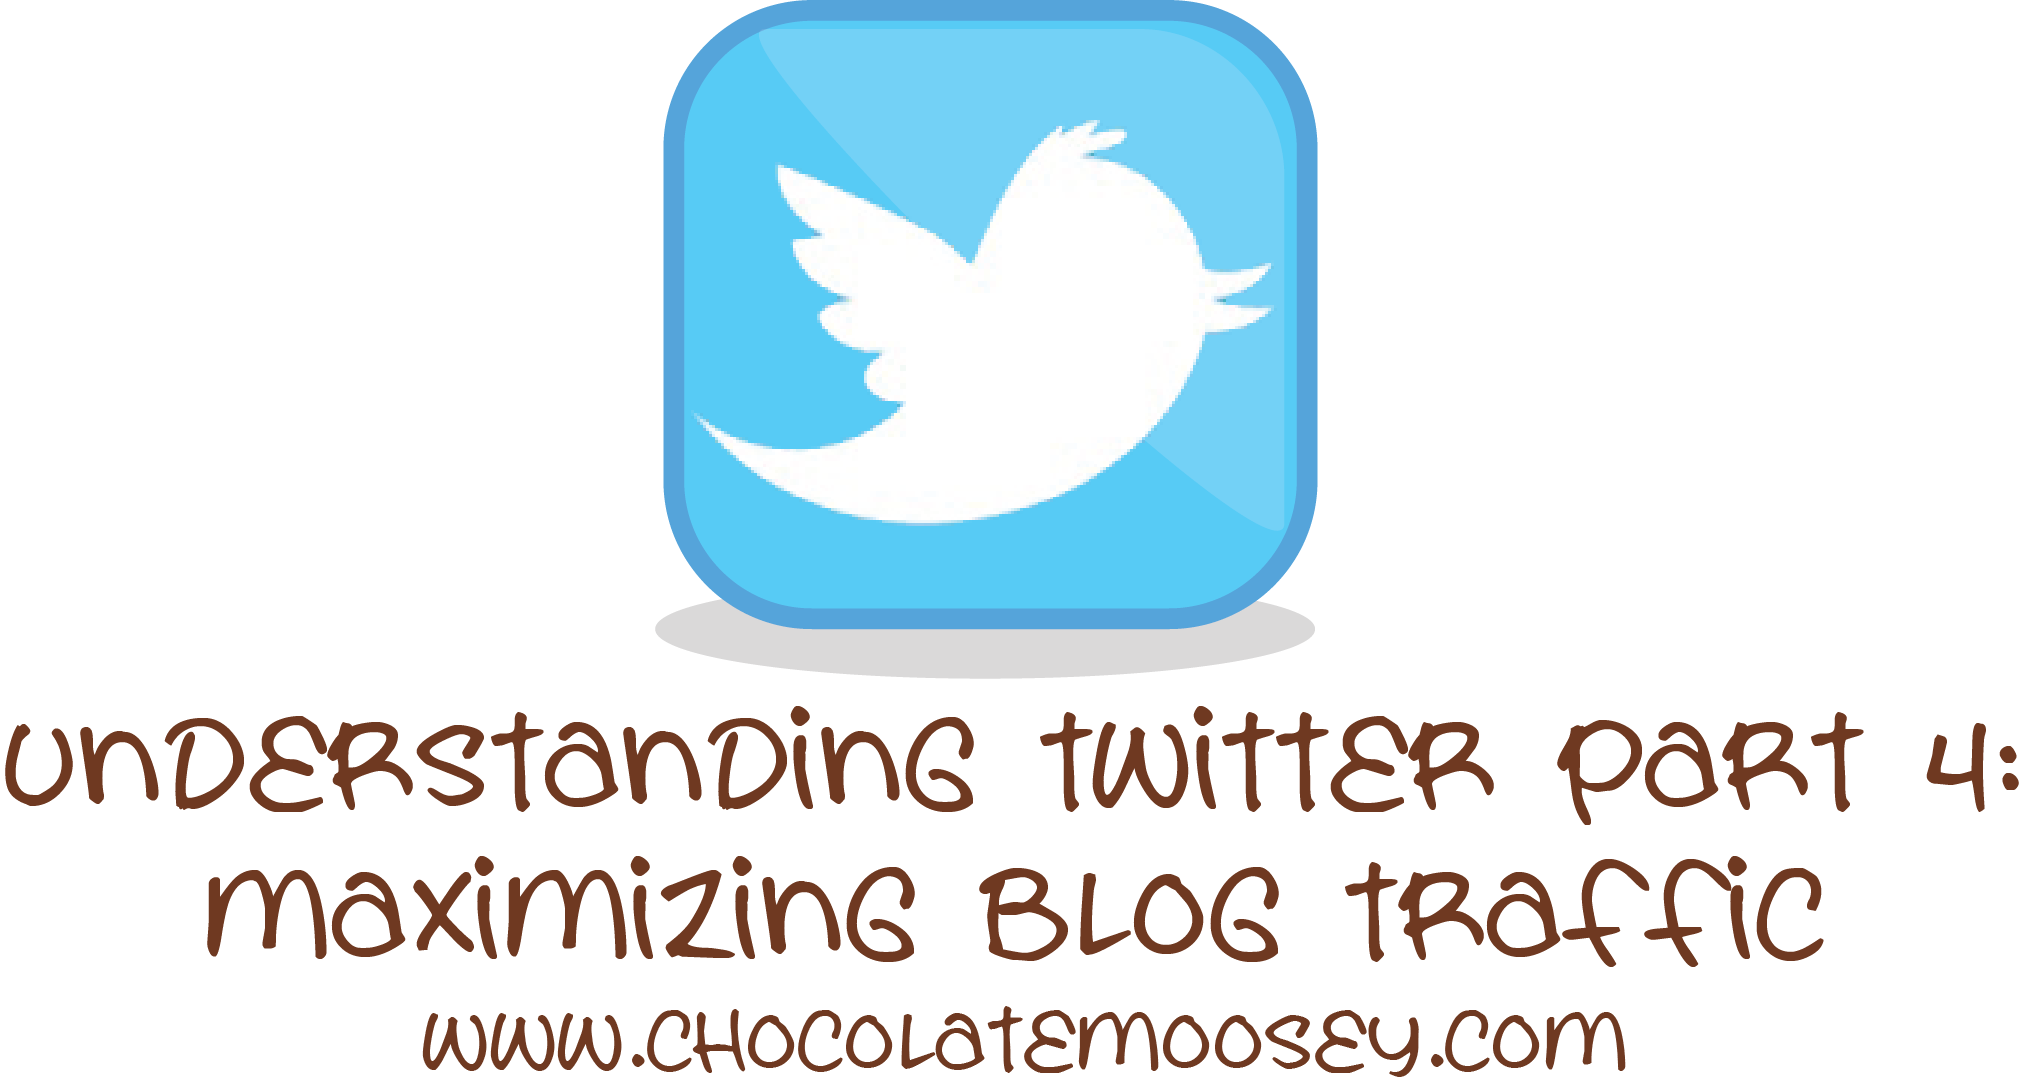 Understanding Twitter Part 4 – Maximizing Blog Traffic